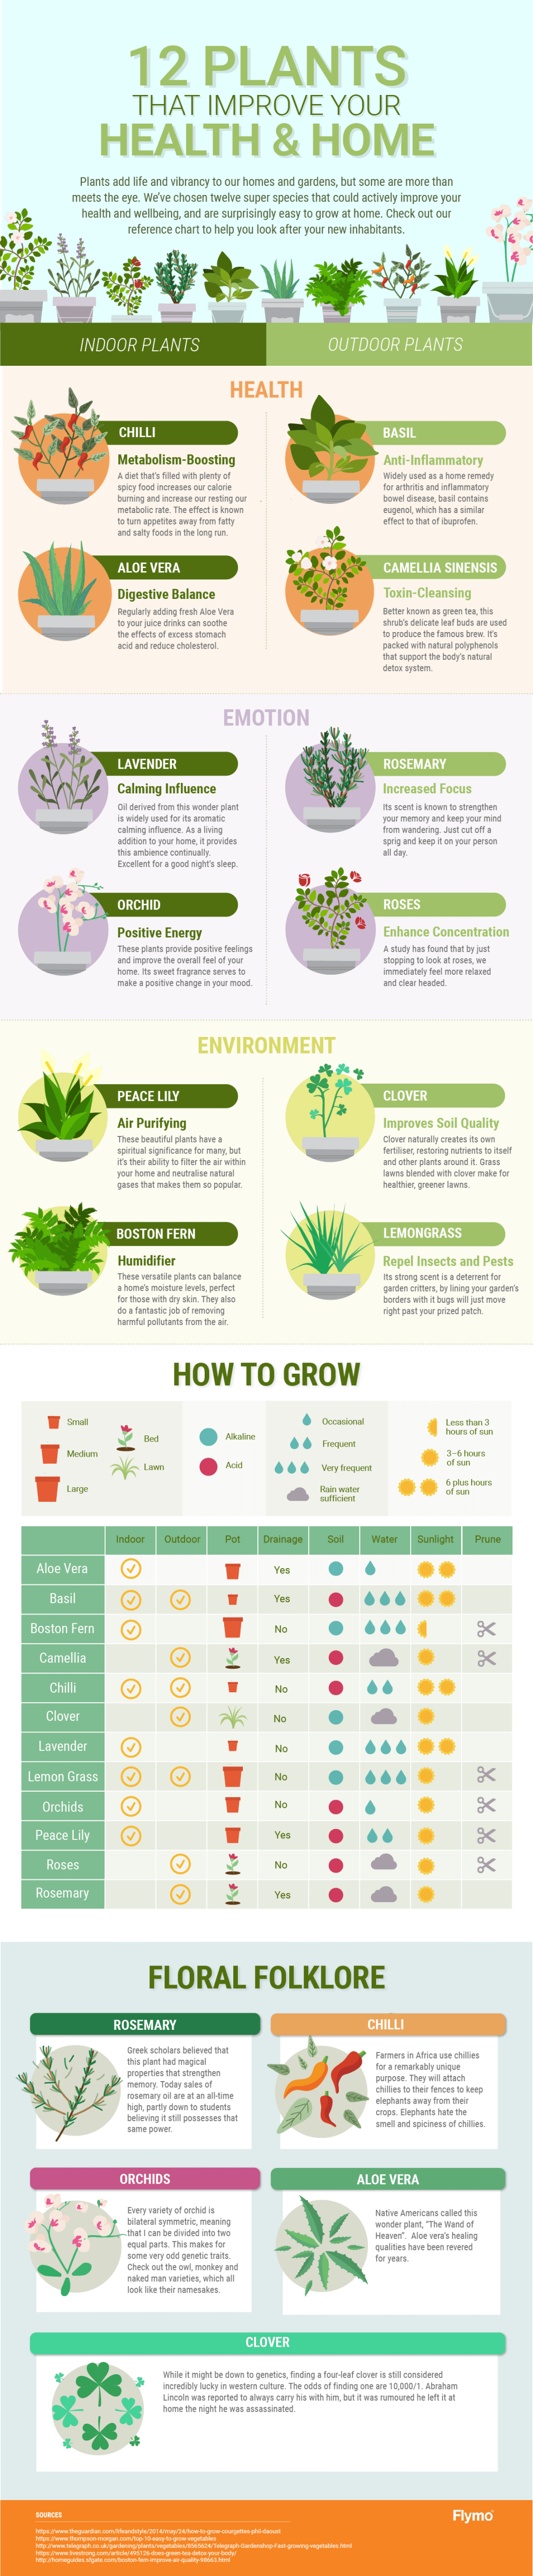 12 Plants that Boost Health and Environment - Infographic